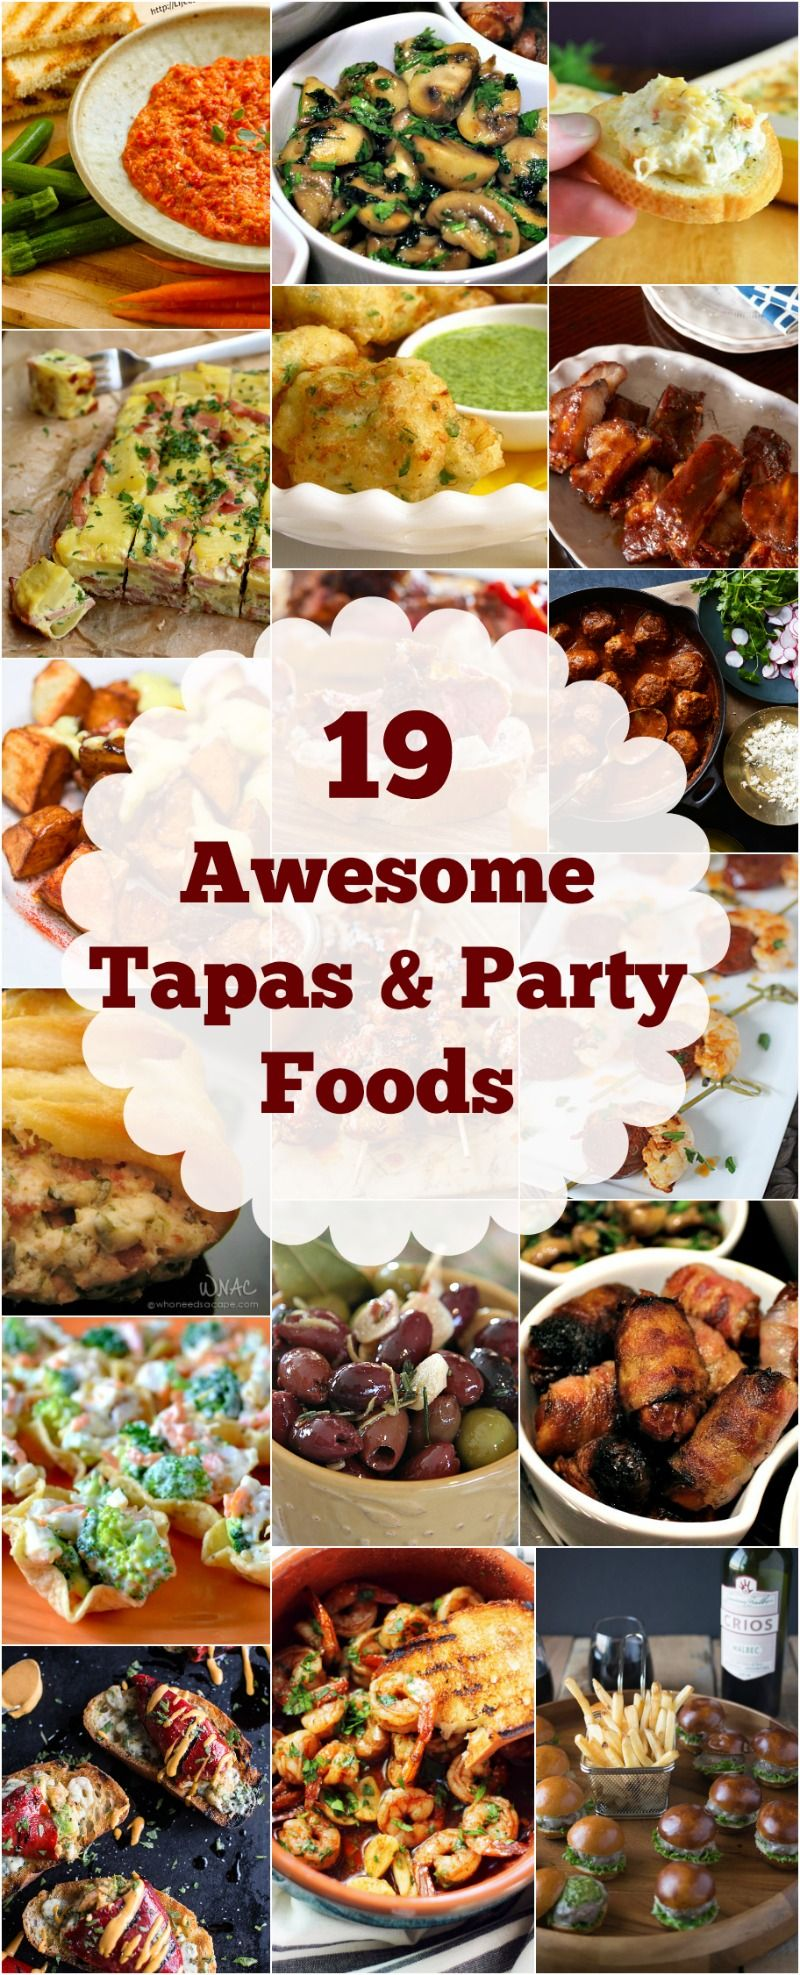 19 awesome tapas party foods everyone will enjoy bon appetit pinterest. Black Bedroom Furniture Sets. Home Design Ideas